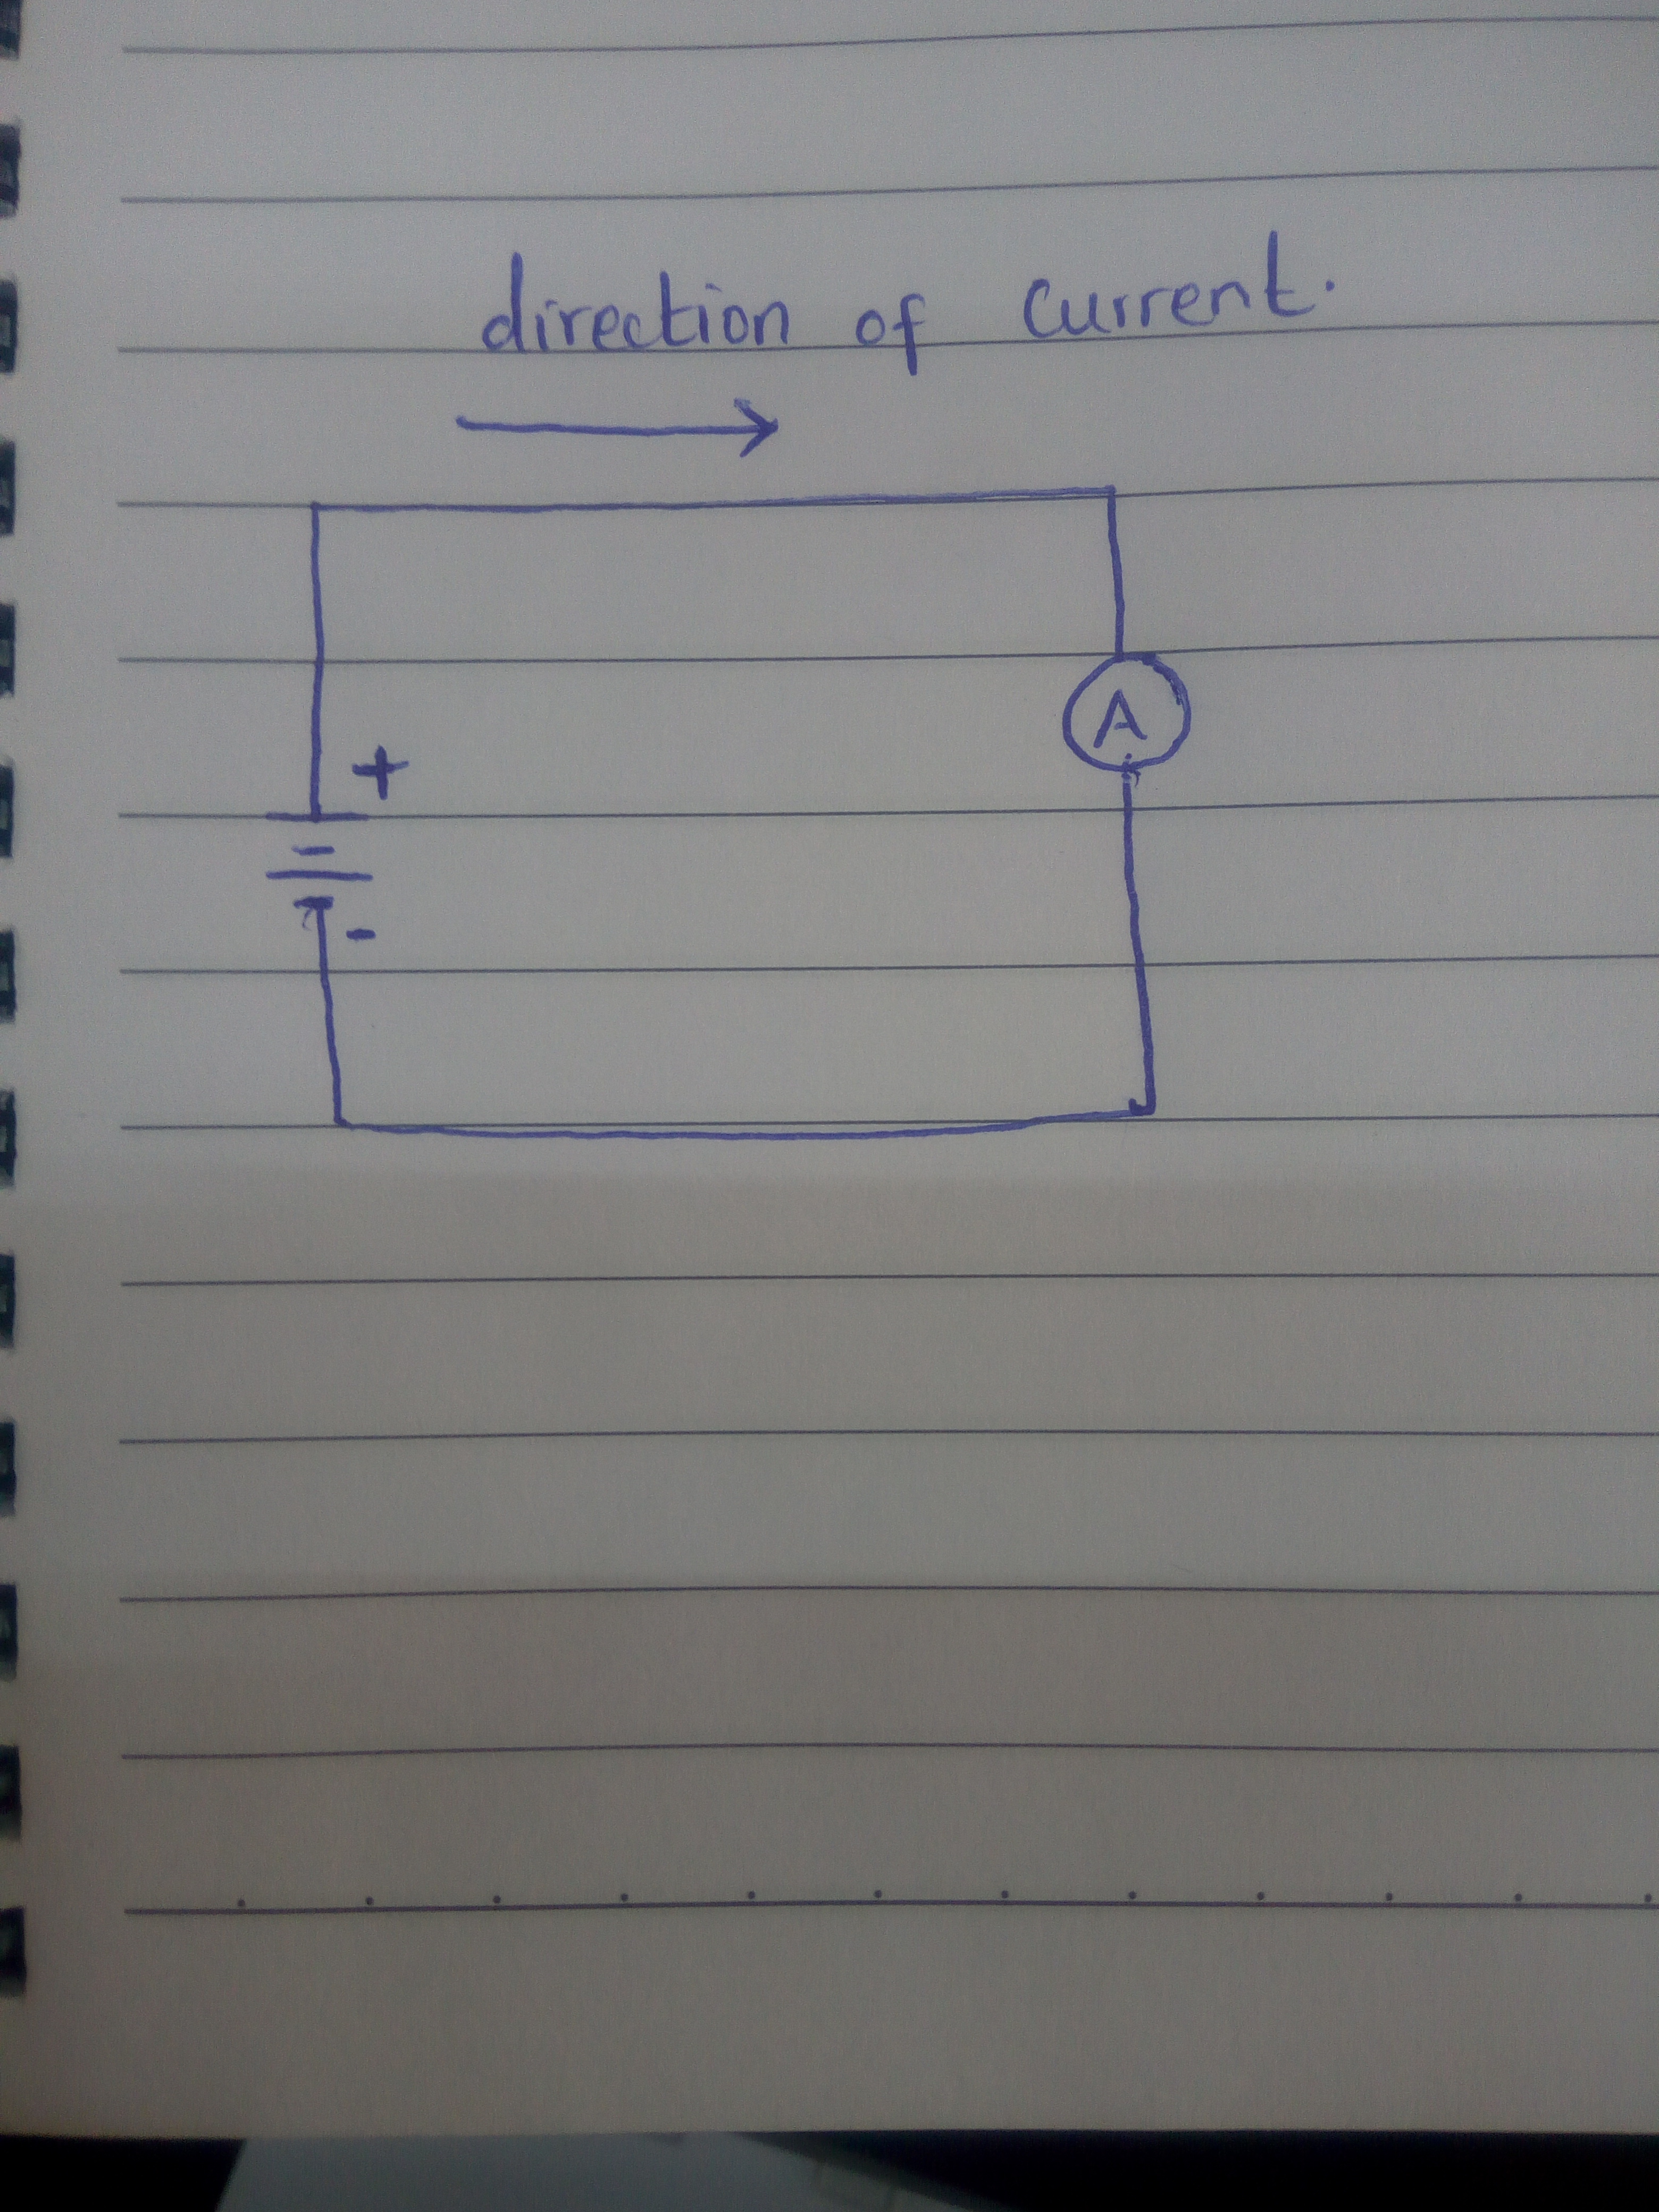 State Ohms Law Draw Circuit Diagram To Verify This Indicating Wiring On 6 Volt Positive Ground For Meter Download